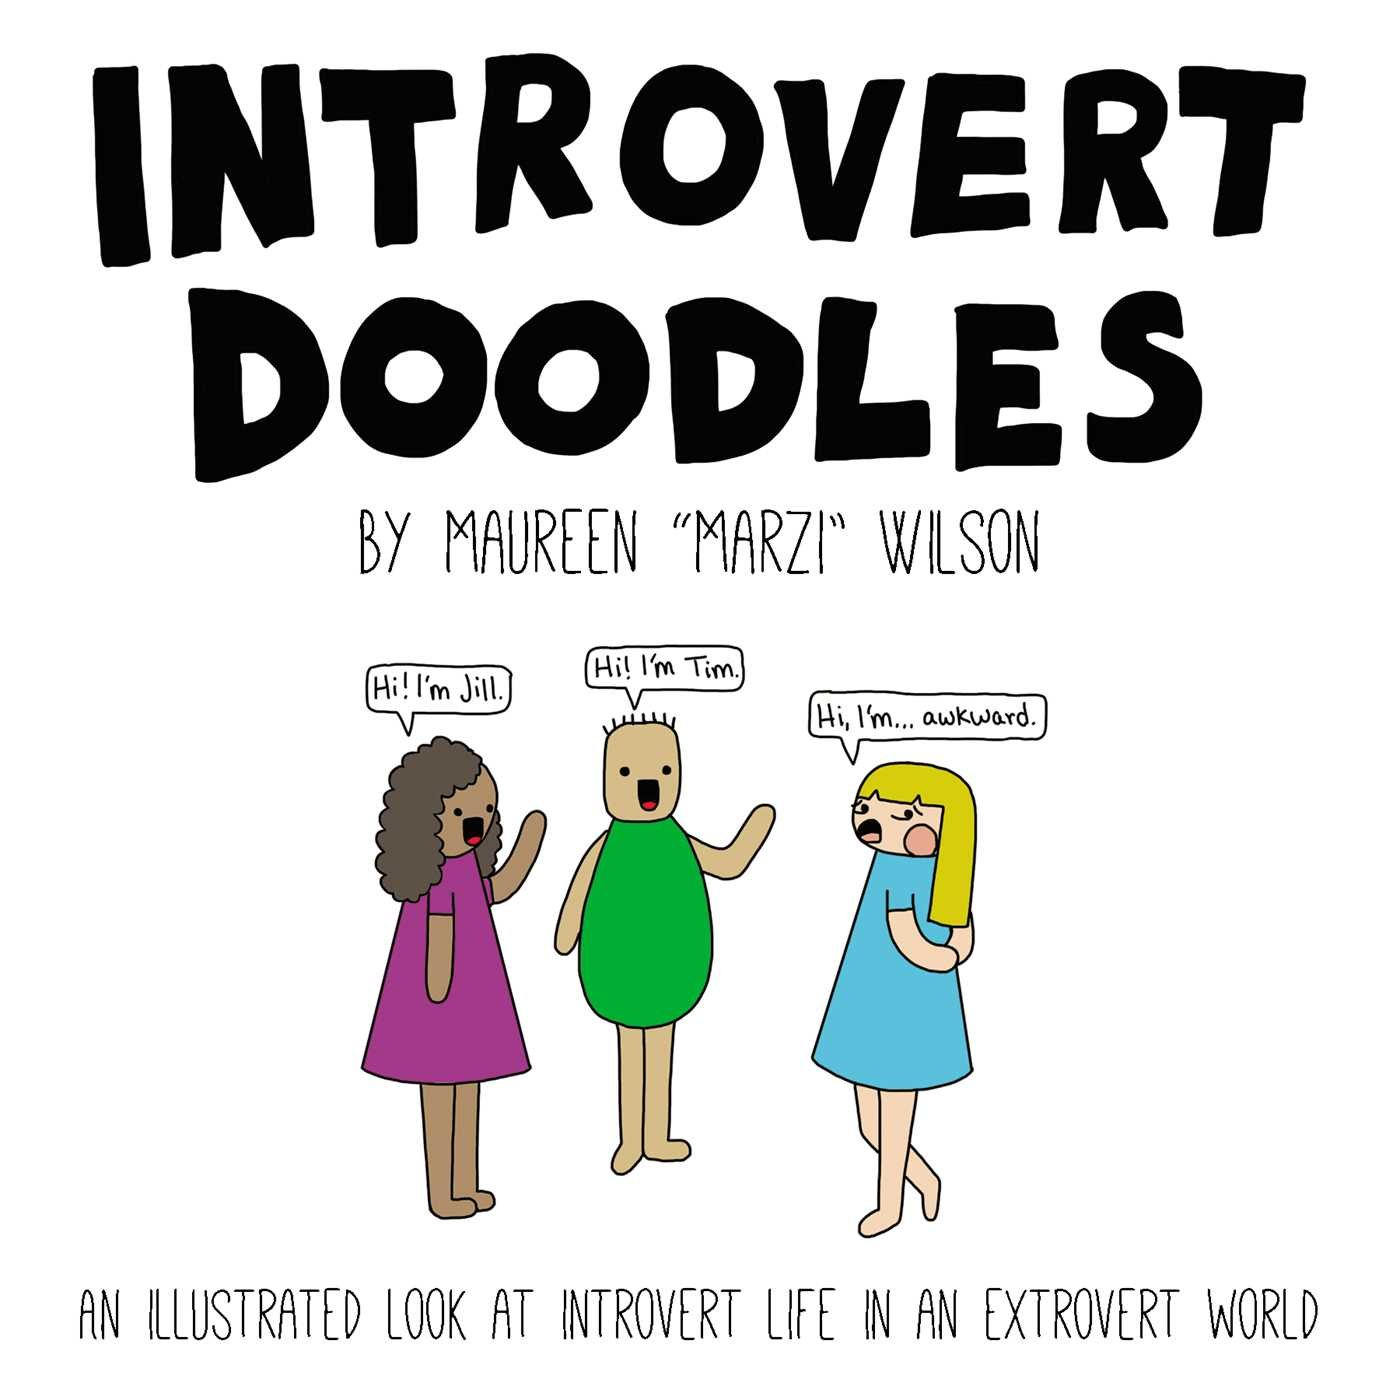 com introvert doodles an illustrated look at introvert com introvert doodles an illustrated look at introvert life in an extrovert world 9781507200018 maureen marzi wilson books